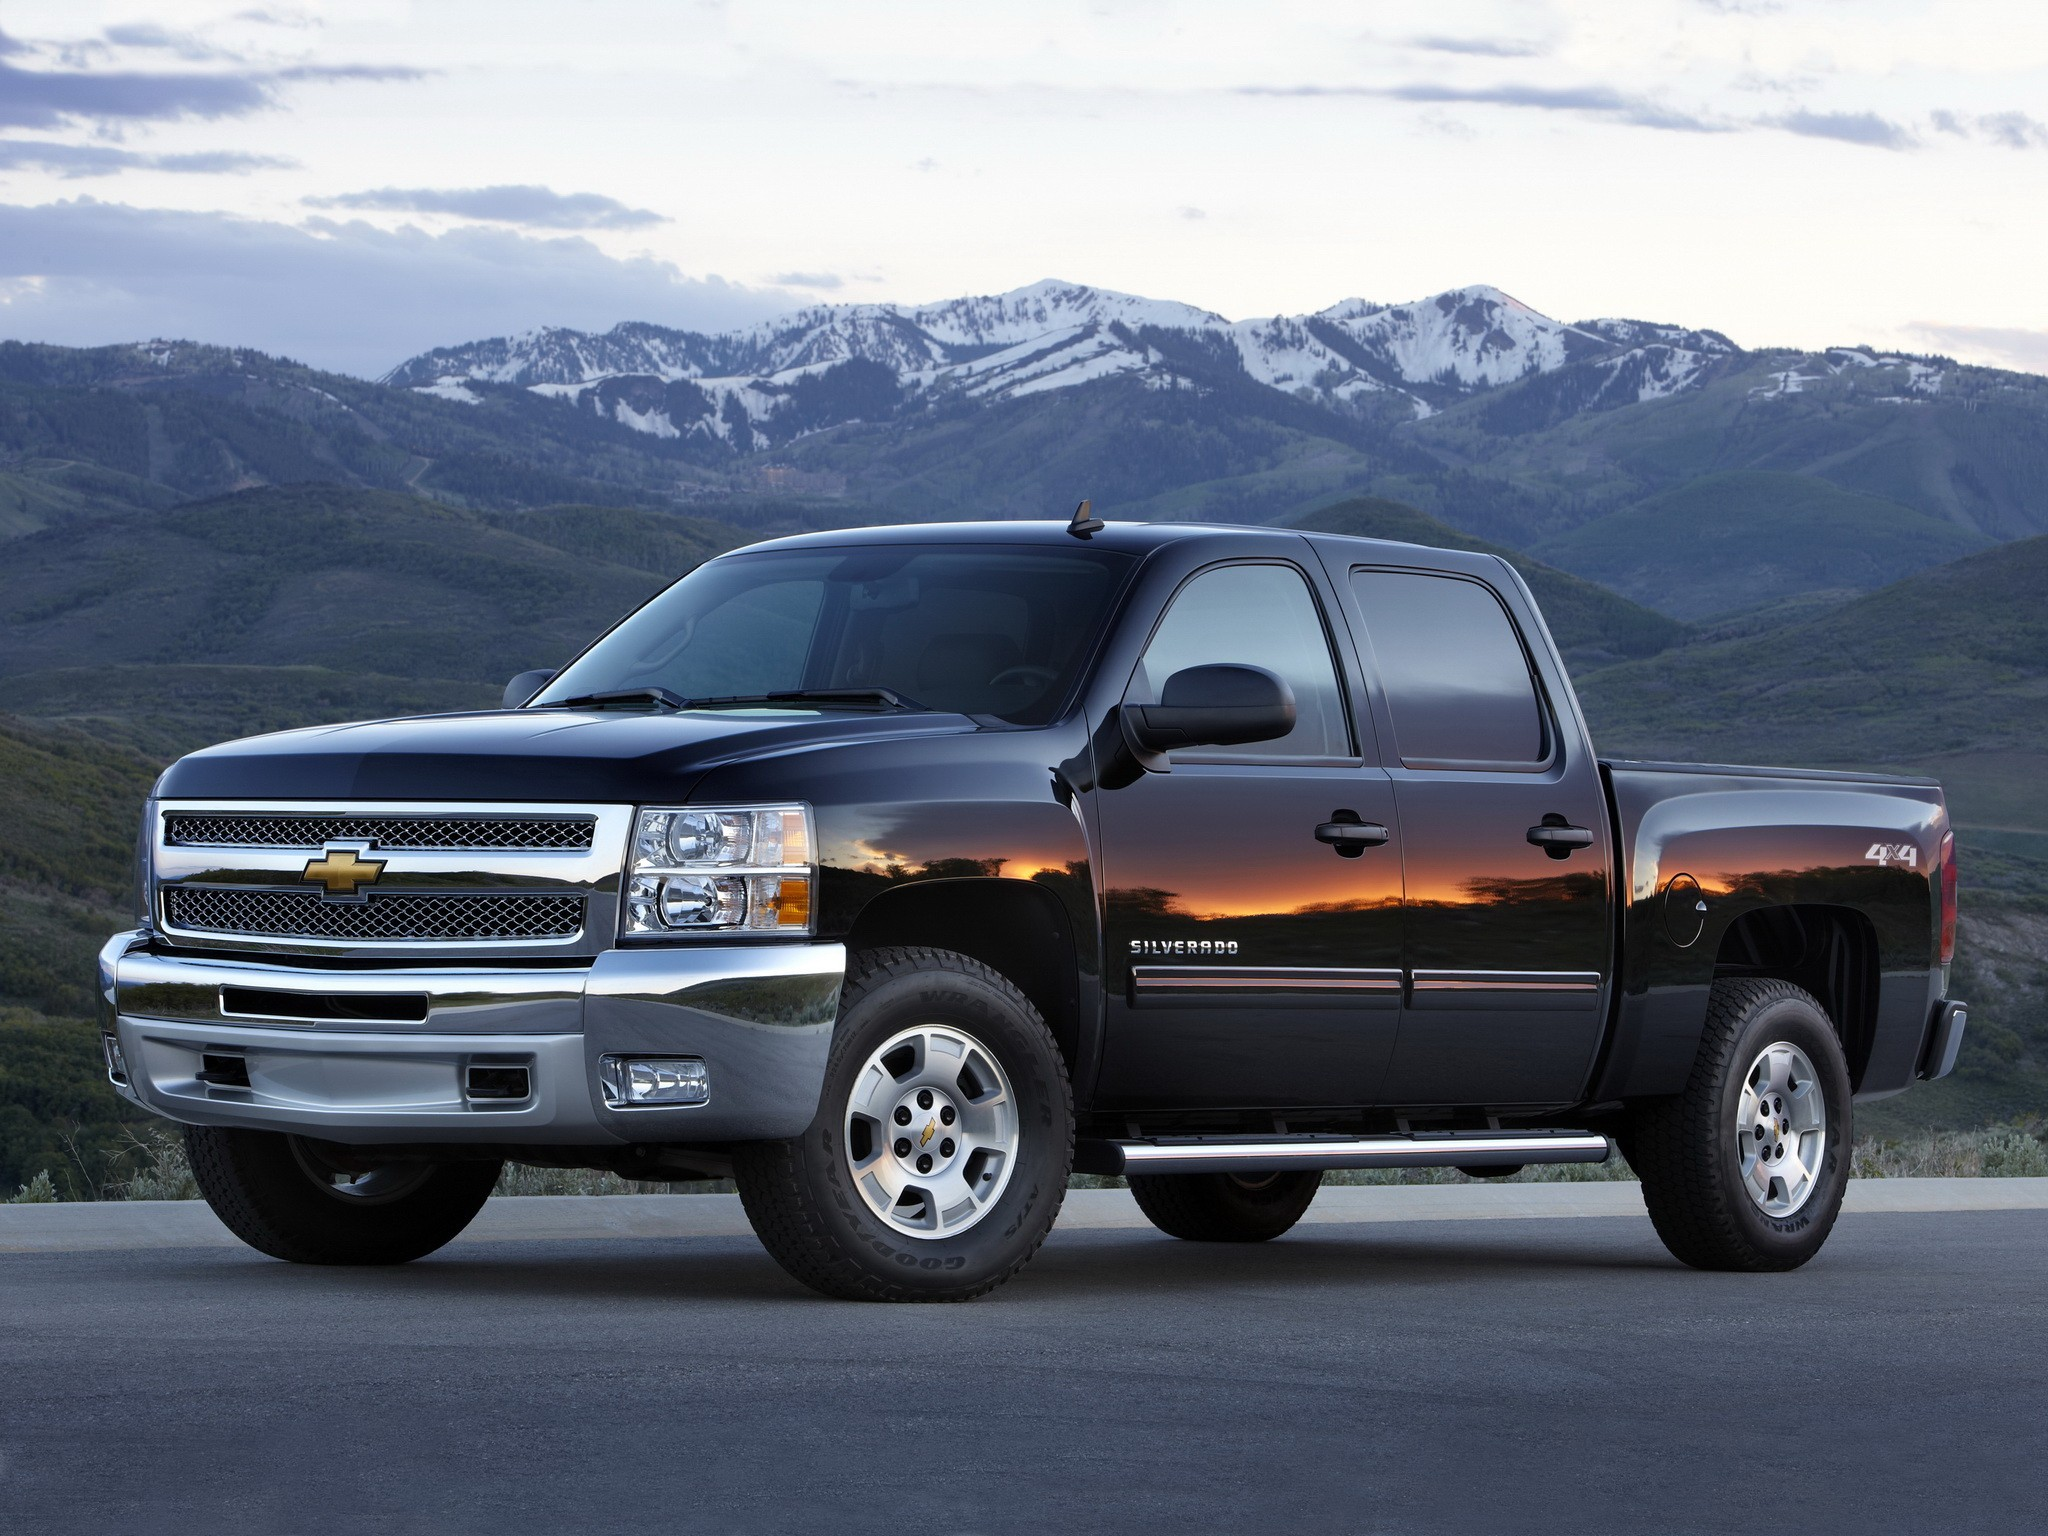 chevrolet silverado 1500 crew cab specs 2008 2009 2010. Black Bedroom Furniture Sets. Home Design Ideas